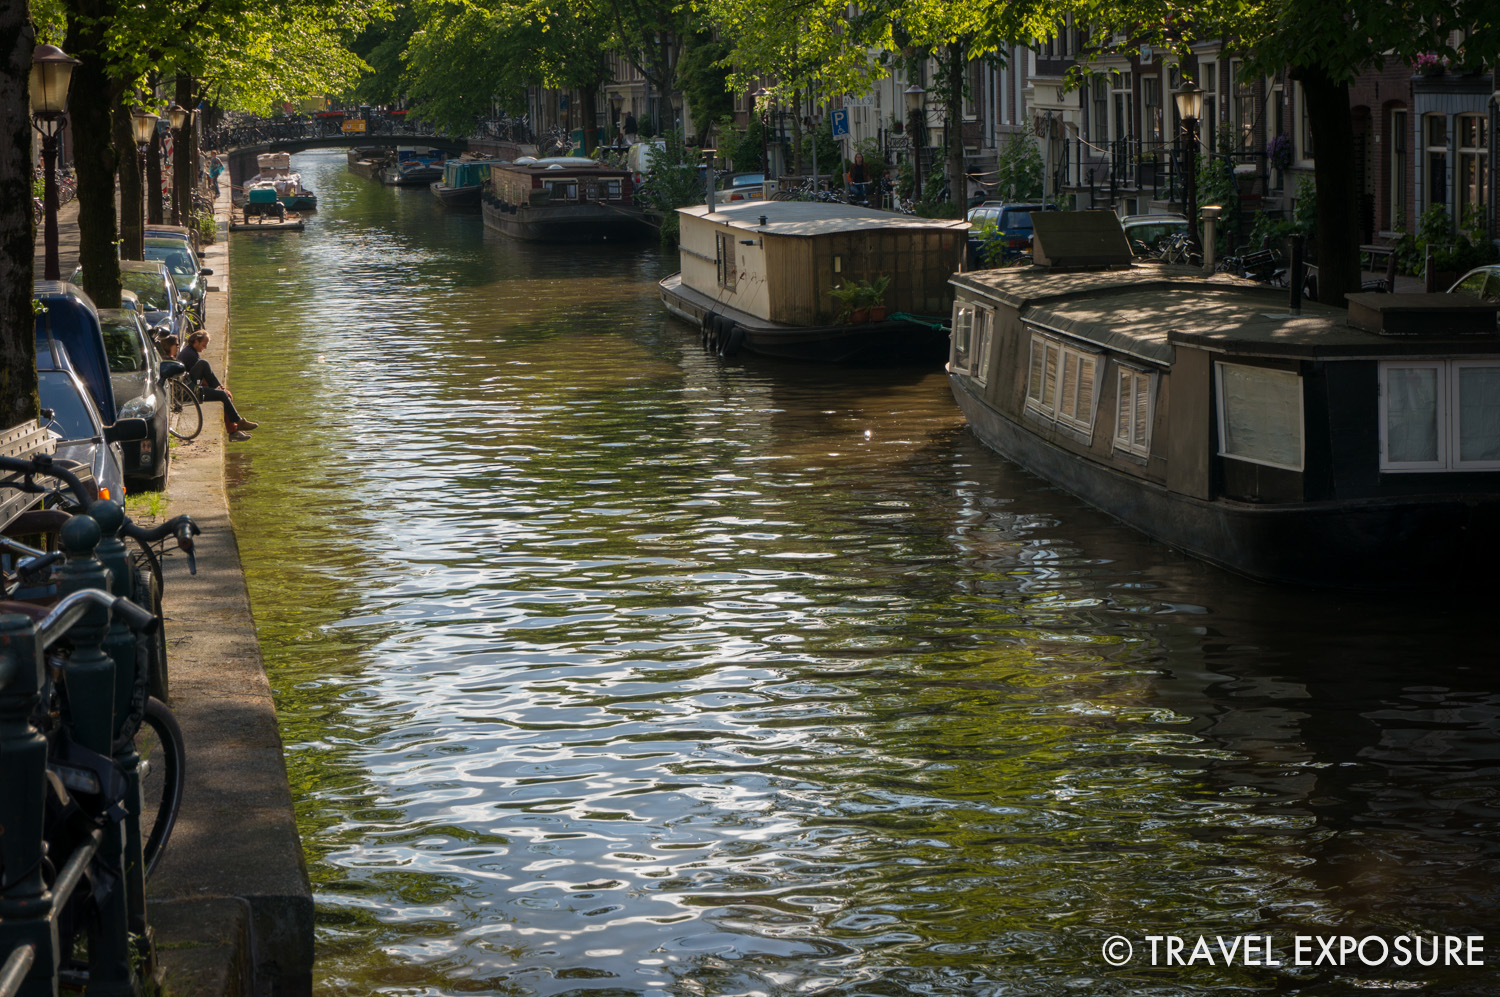 WEEK OF MAY 19   A couple enjoys the sunshine along the edge of the Bloemgracht canal in Amsterdam, Netherlands.